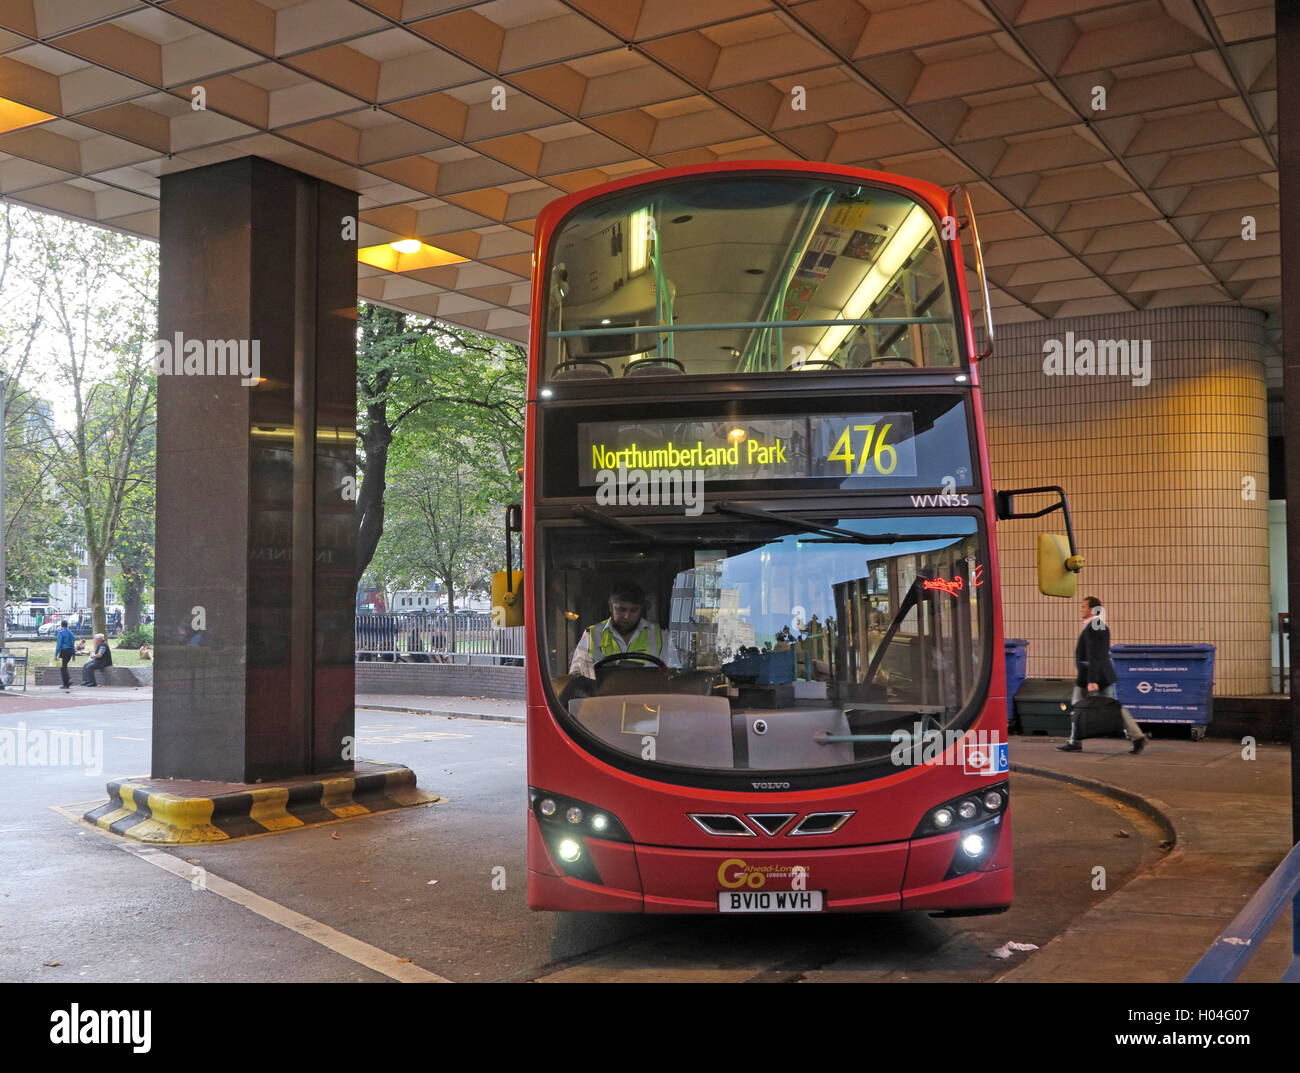 Euston Bus Station to Northumberland Park, Red Double-decker London Bus 476, in Euston bus station - Stock Image